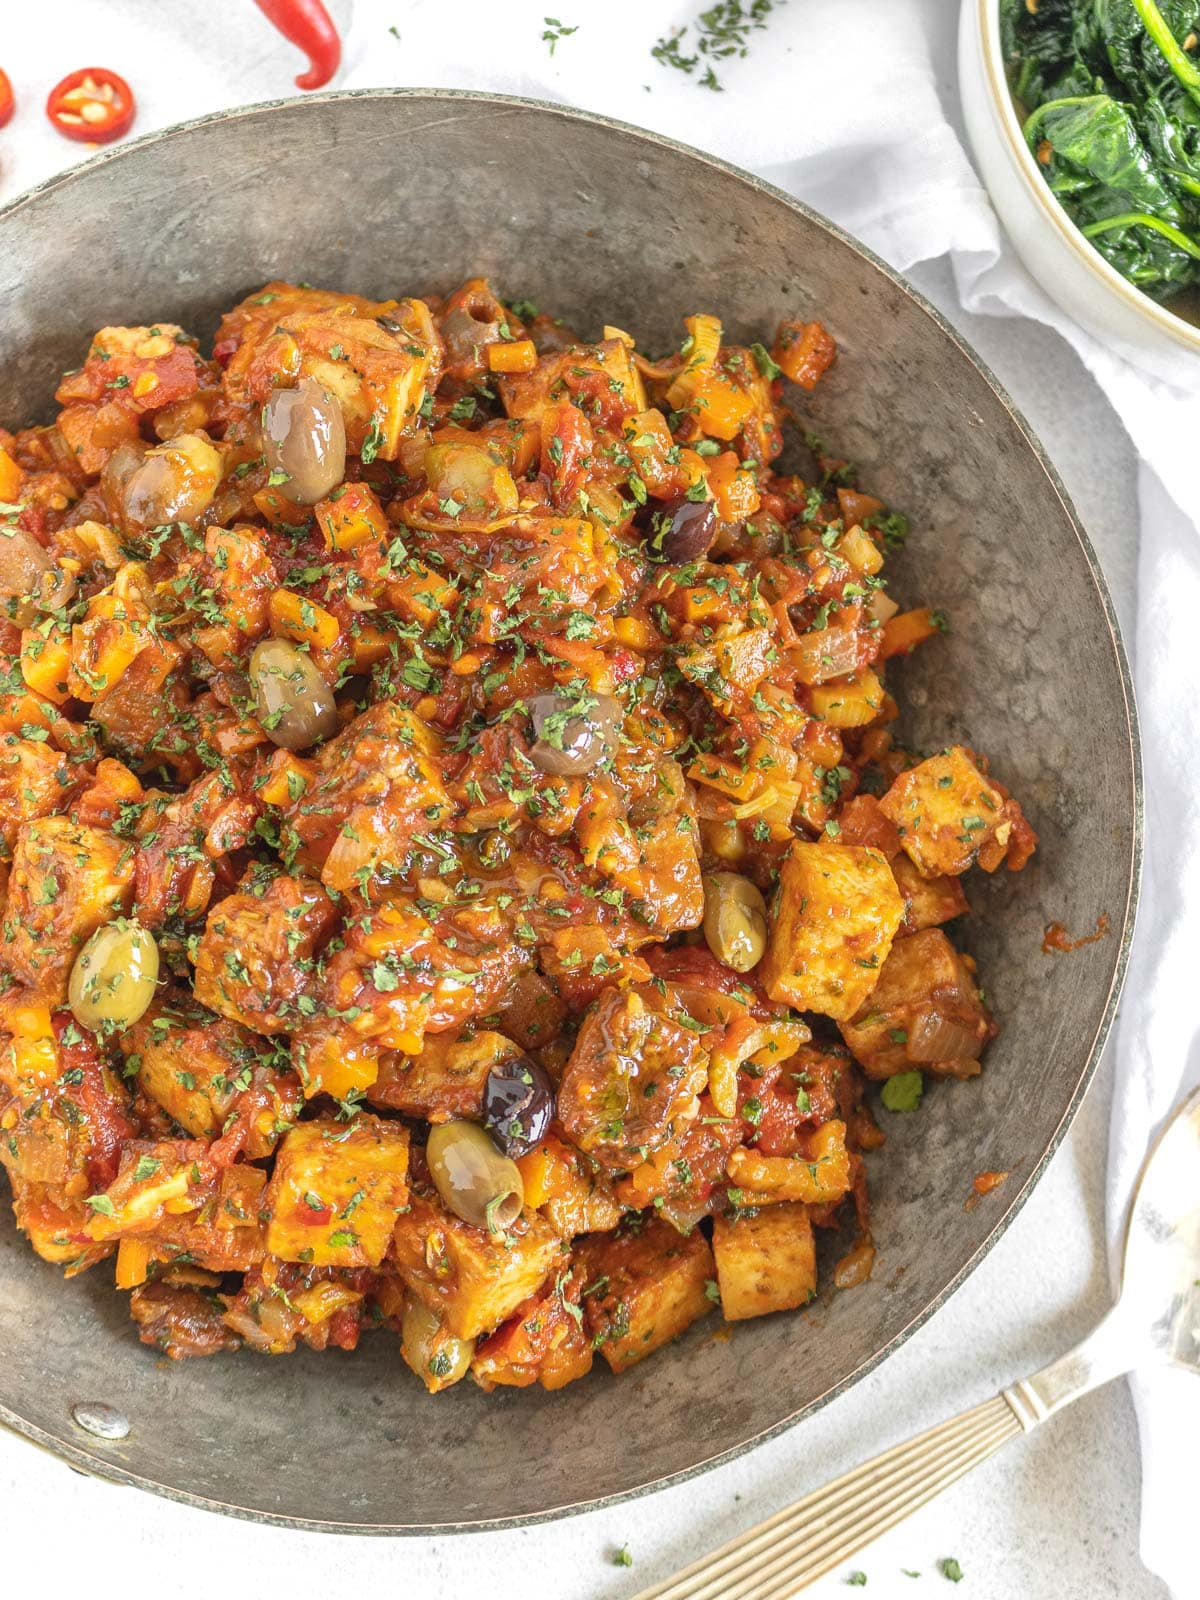 cacciatore sauce with tofu in a pan